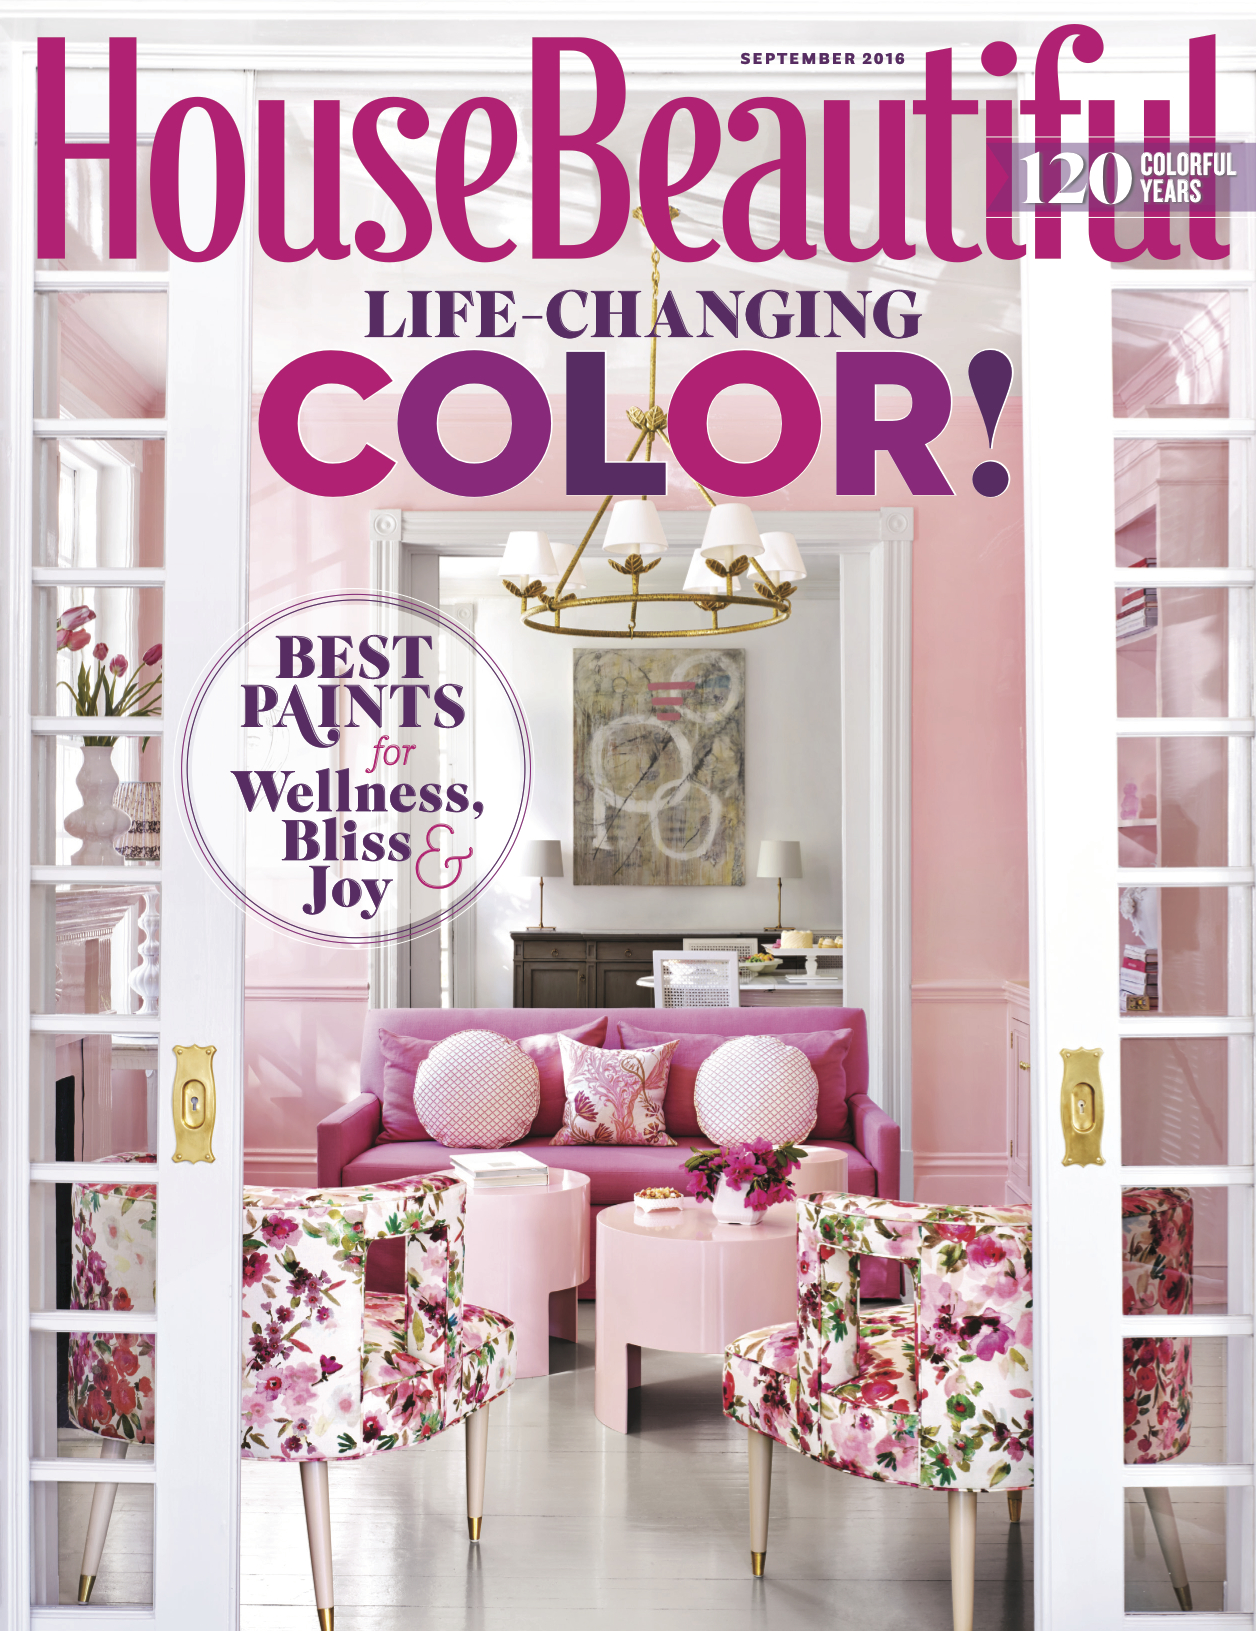 house beautiful september 2016 resources - shopping information